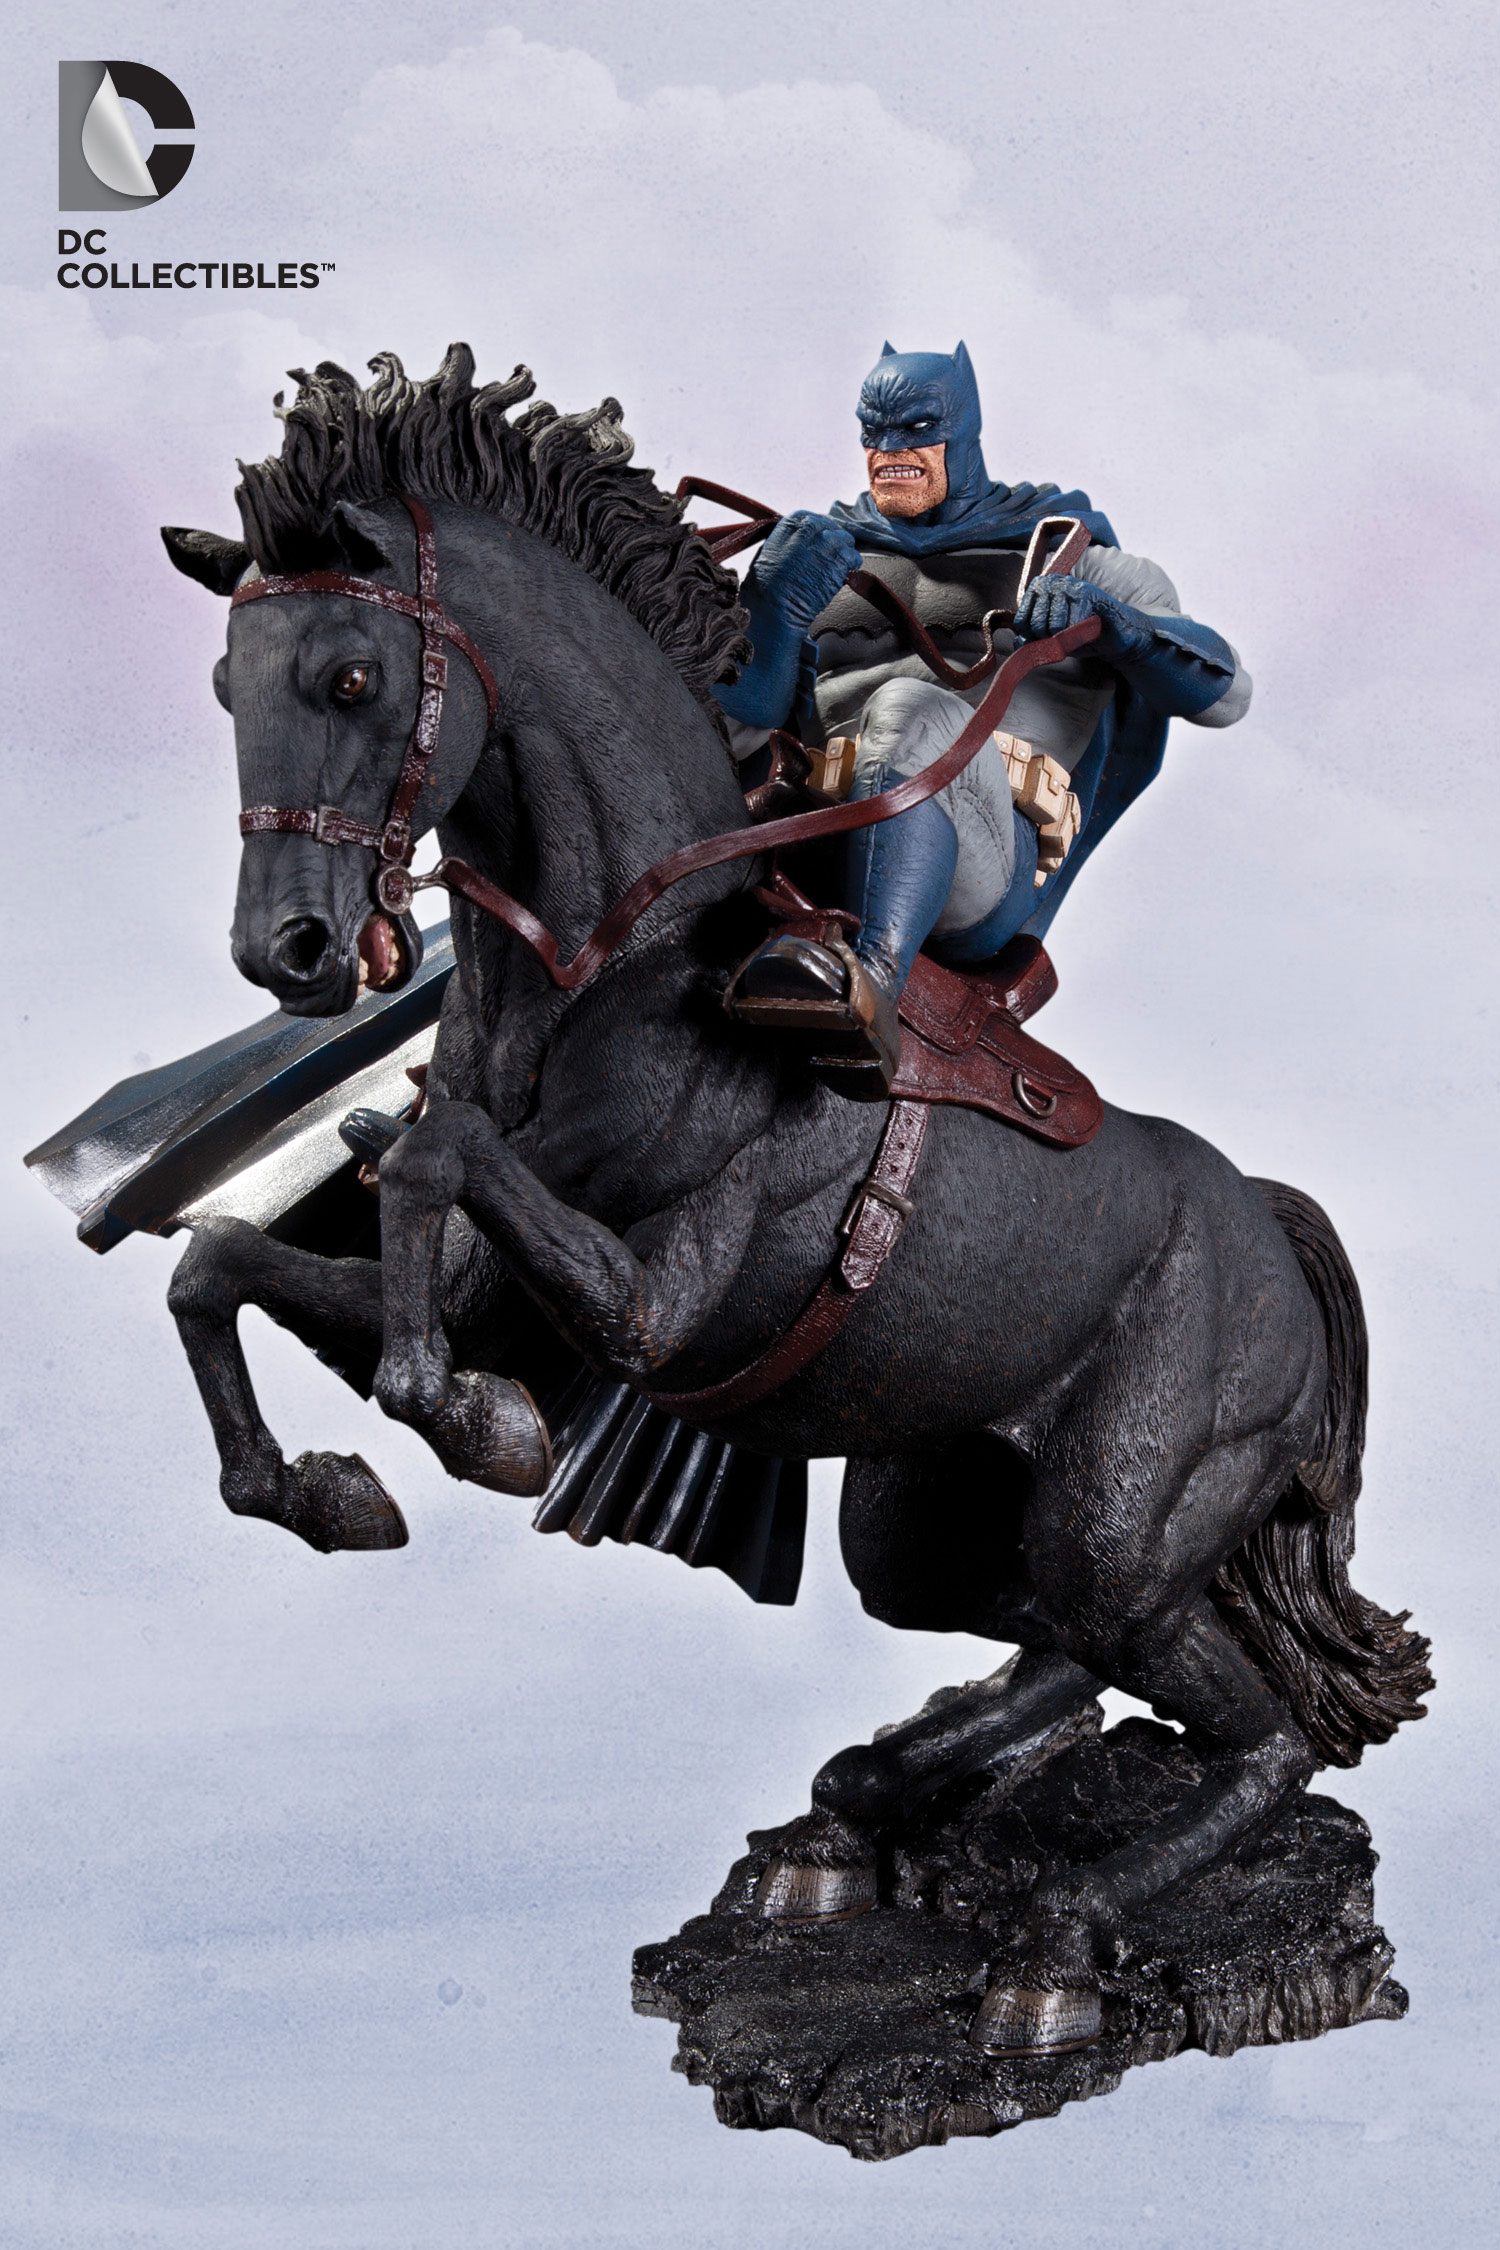 The Dark Knight Returns: A Call to Arms Statue